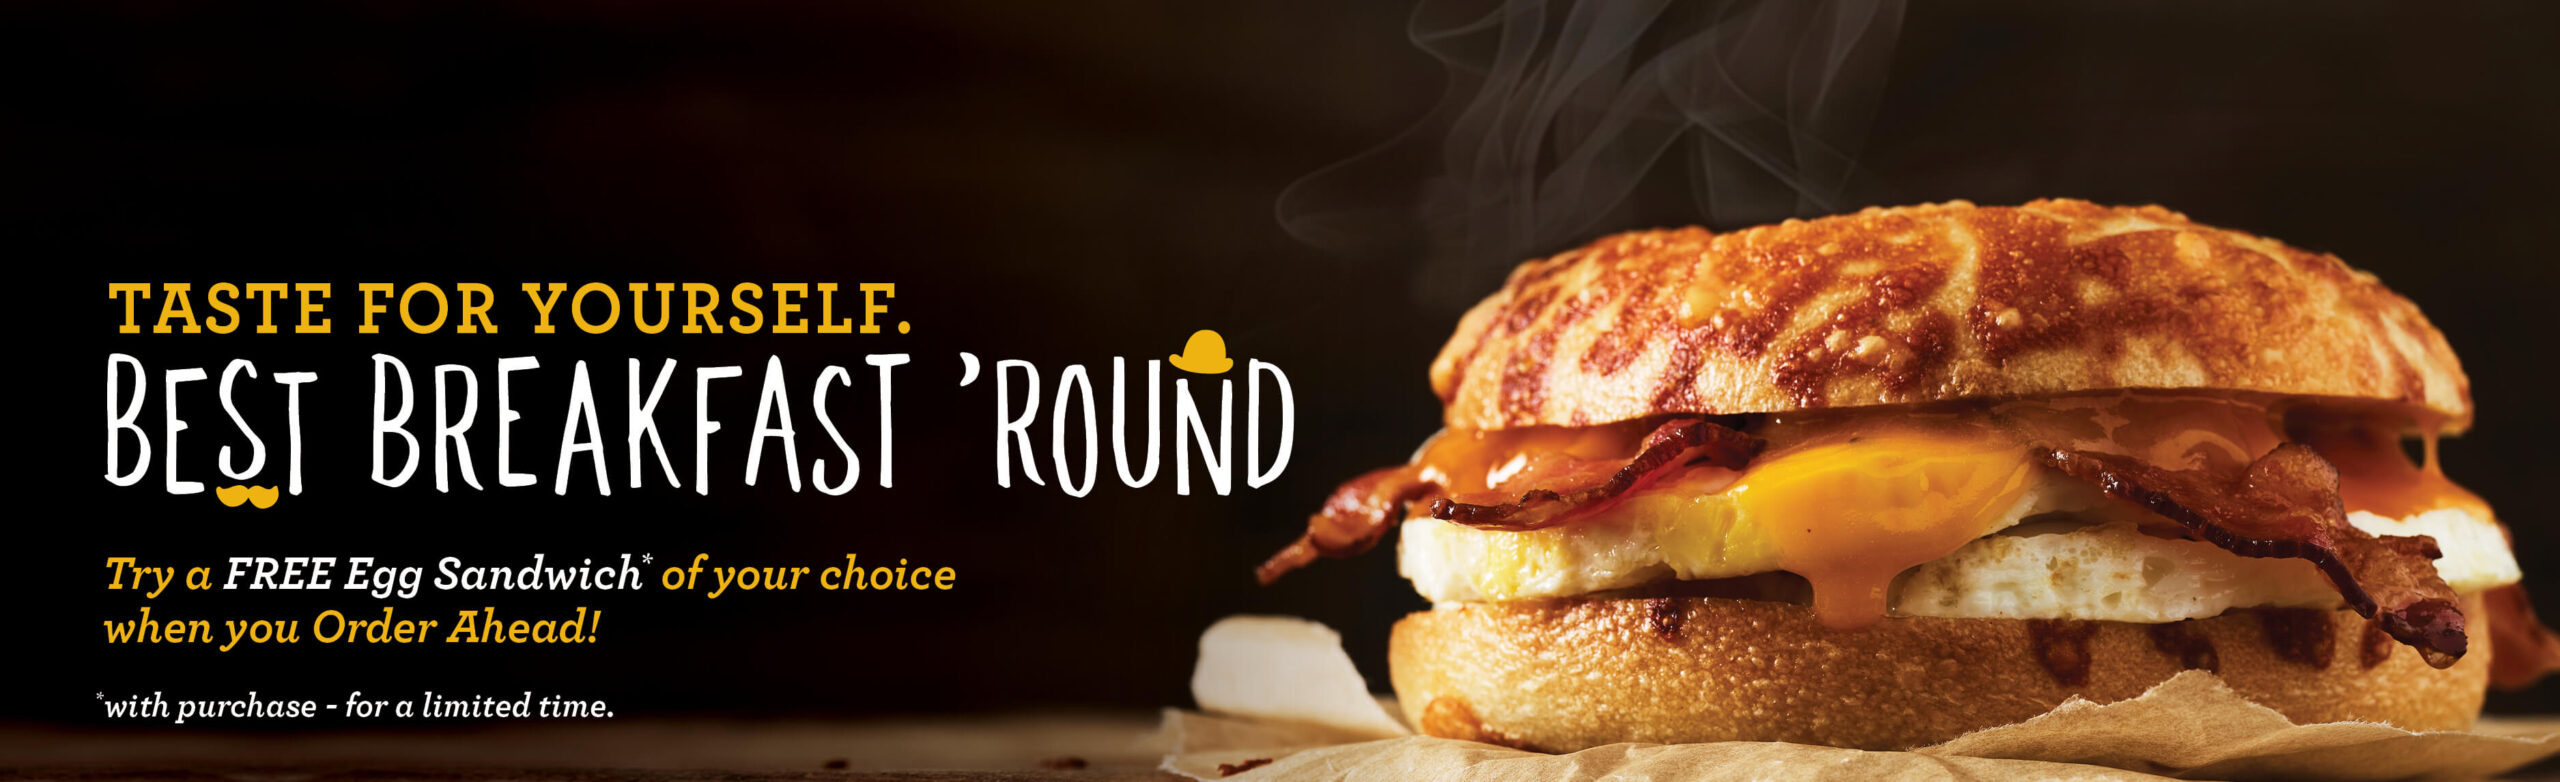 HEADER IMAGE: Taste for Yourself. The Best Bast Breakfast Round. Try a Free Egg Sandwich of your choice when your Order Ahead (with purchase - for a limited time). Click the button below to download our app to get this great offer!